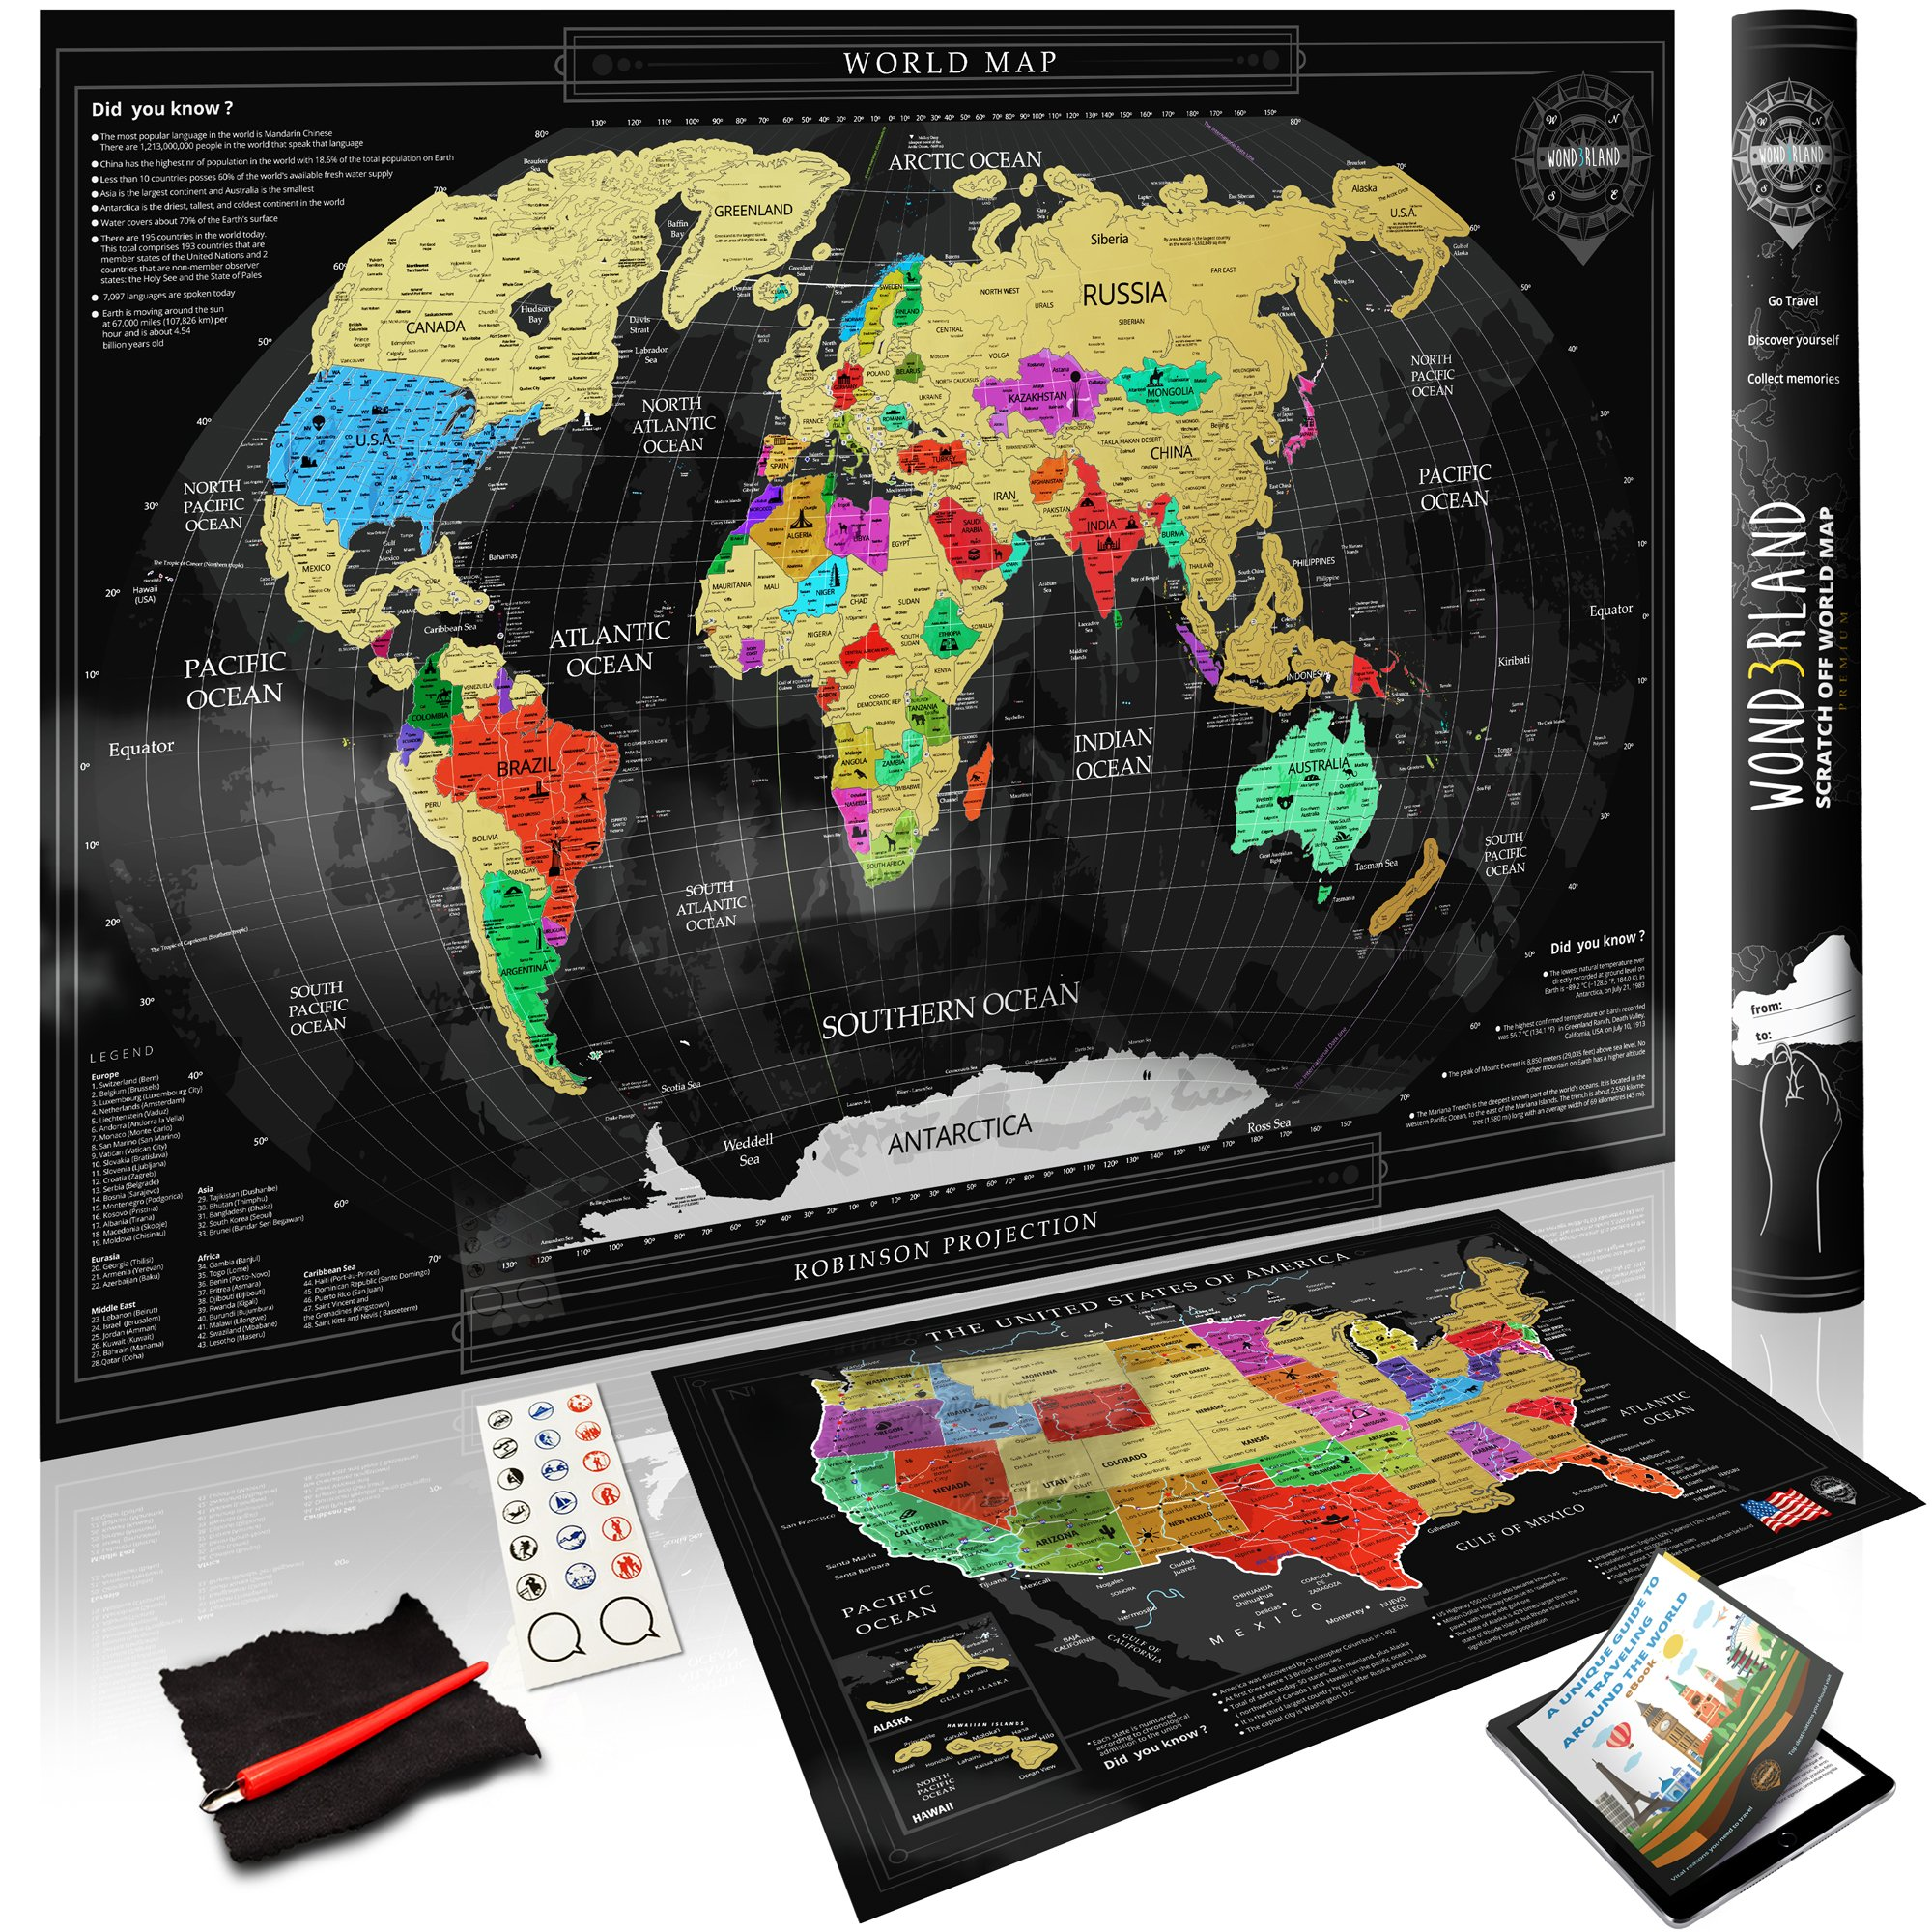 Wond3rland Premium Scratch Off Map of The World + Bonus USA Map   Gold Personalized Wall Map Poster   Deluxe Gift for Travelers & Travel Tracking   Complete Accessories Set + eBook Included